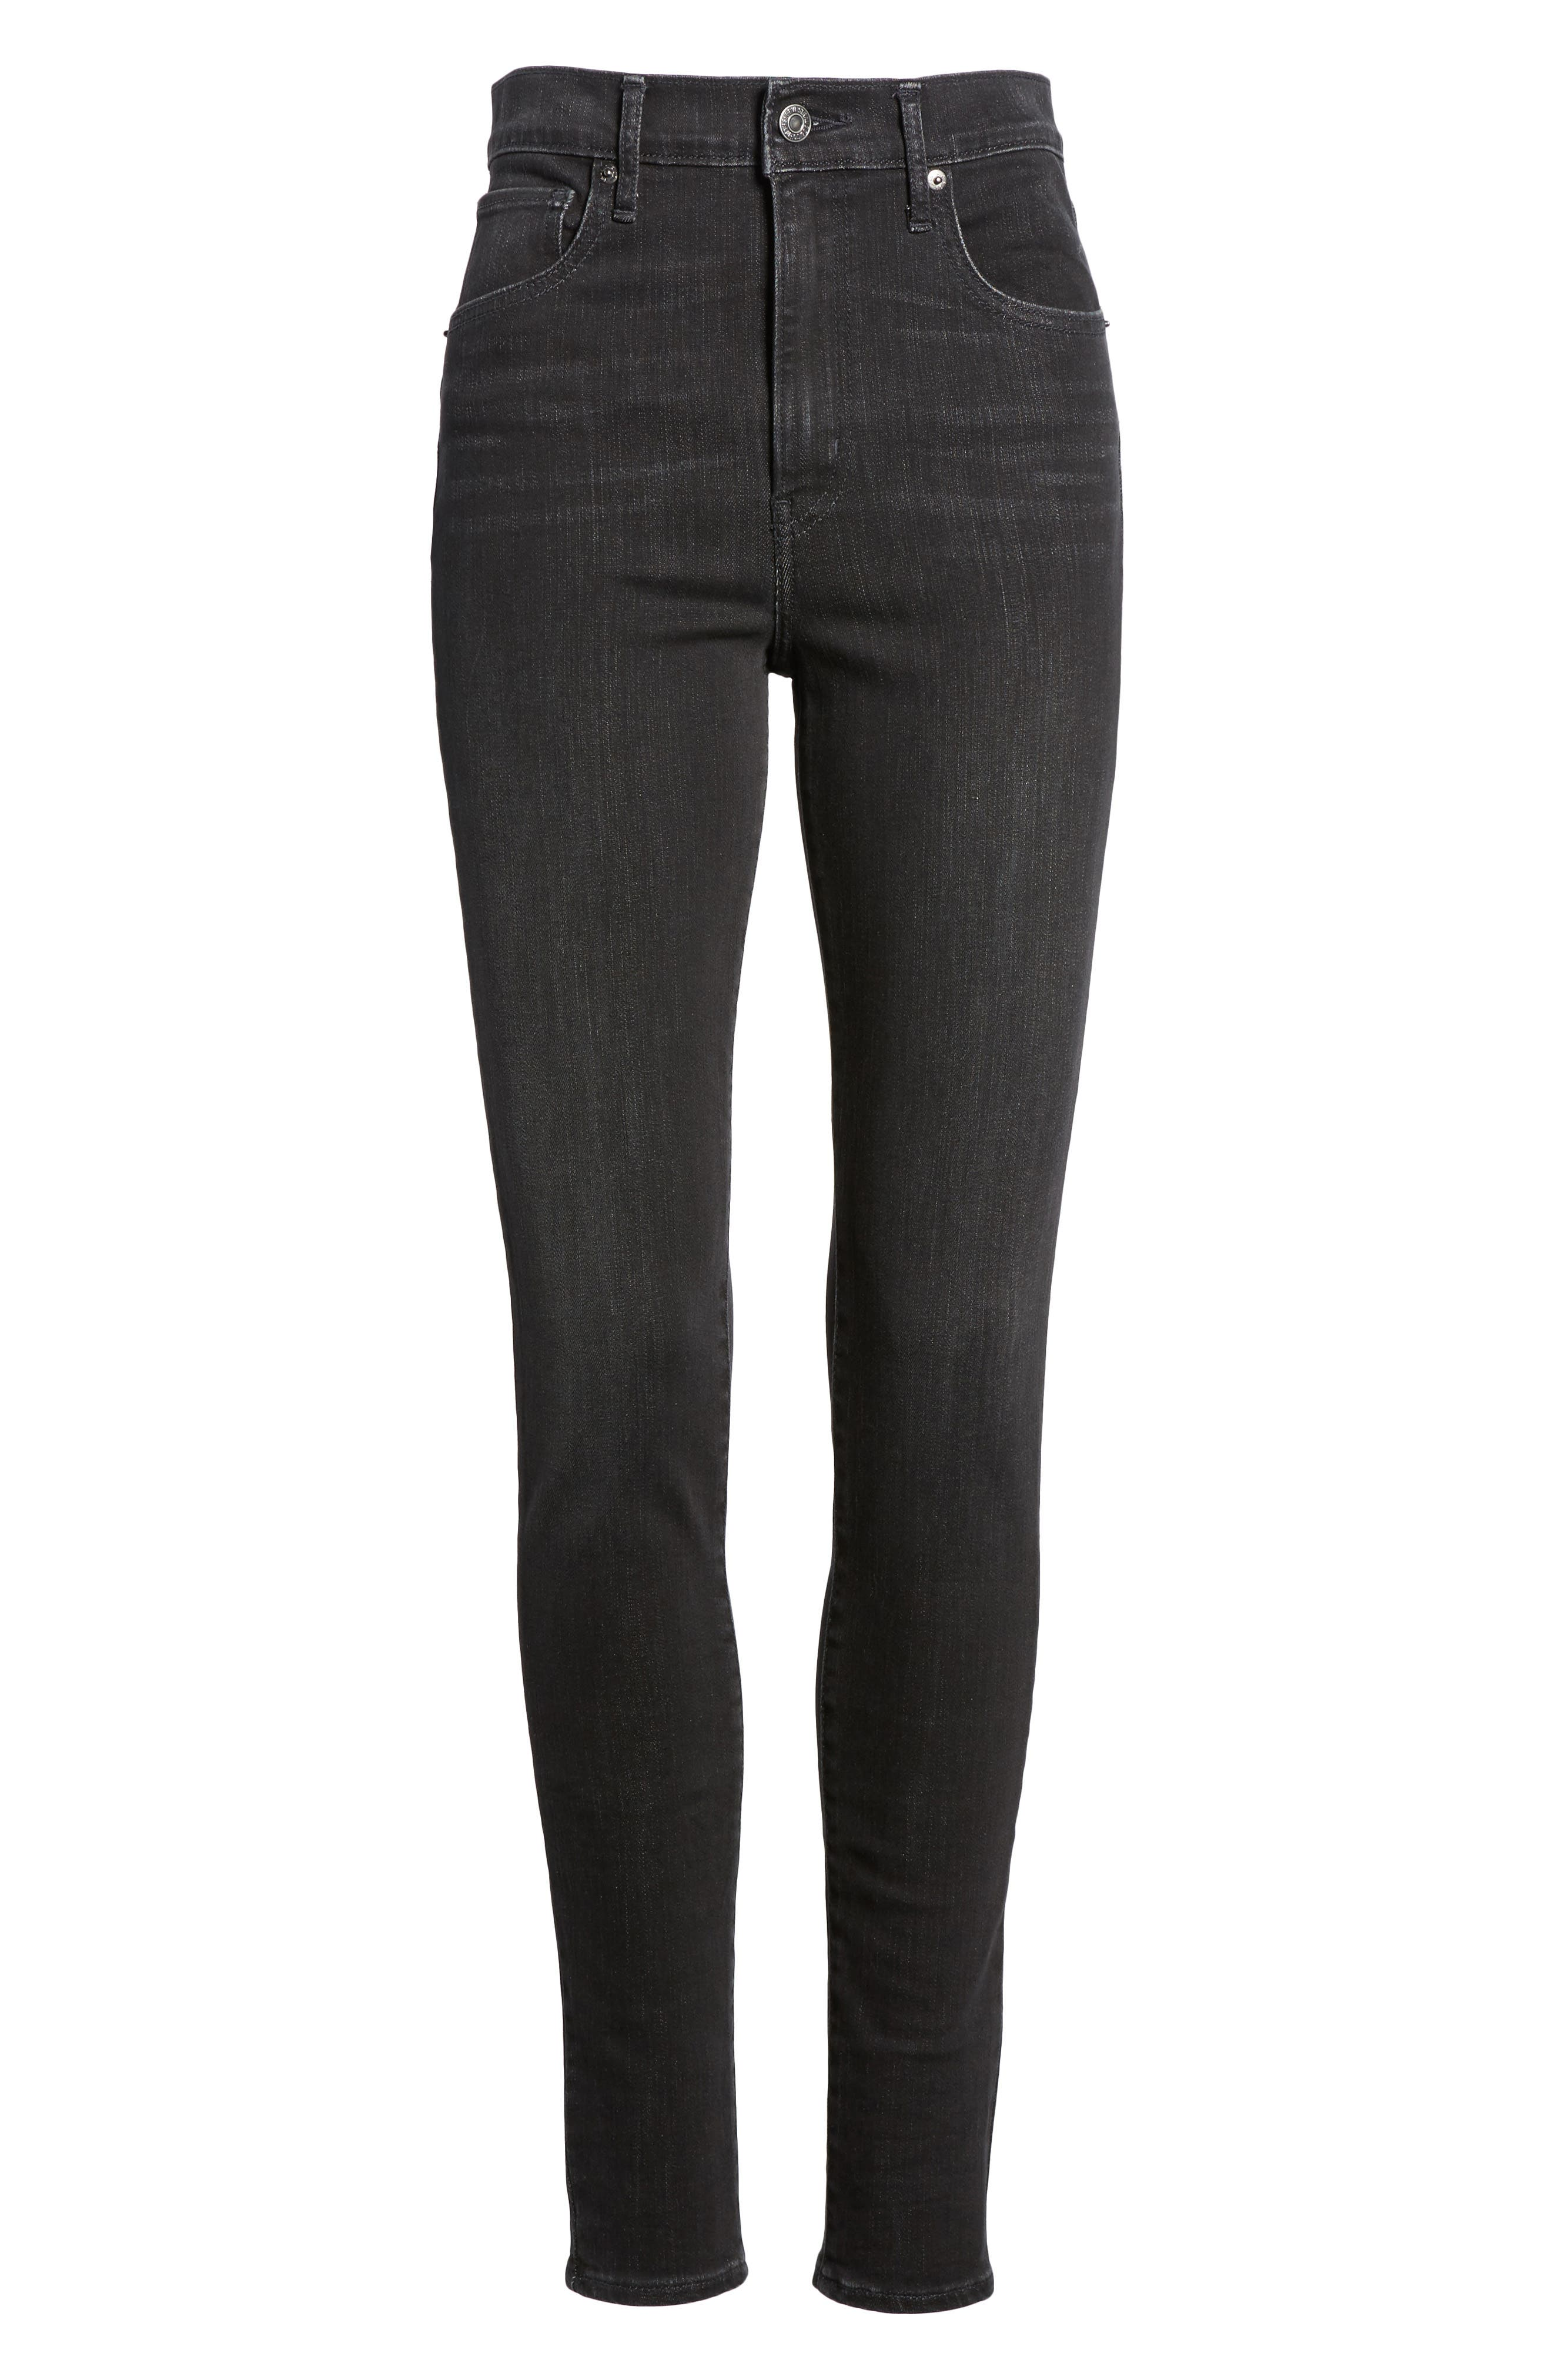 Mile High High Rise Skinny Jeans,                             Alternate thumbnail 6, color,                             Faded Ink